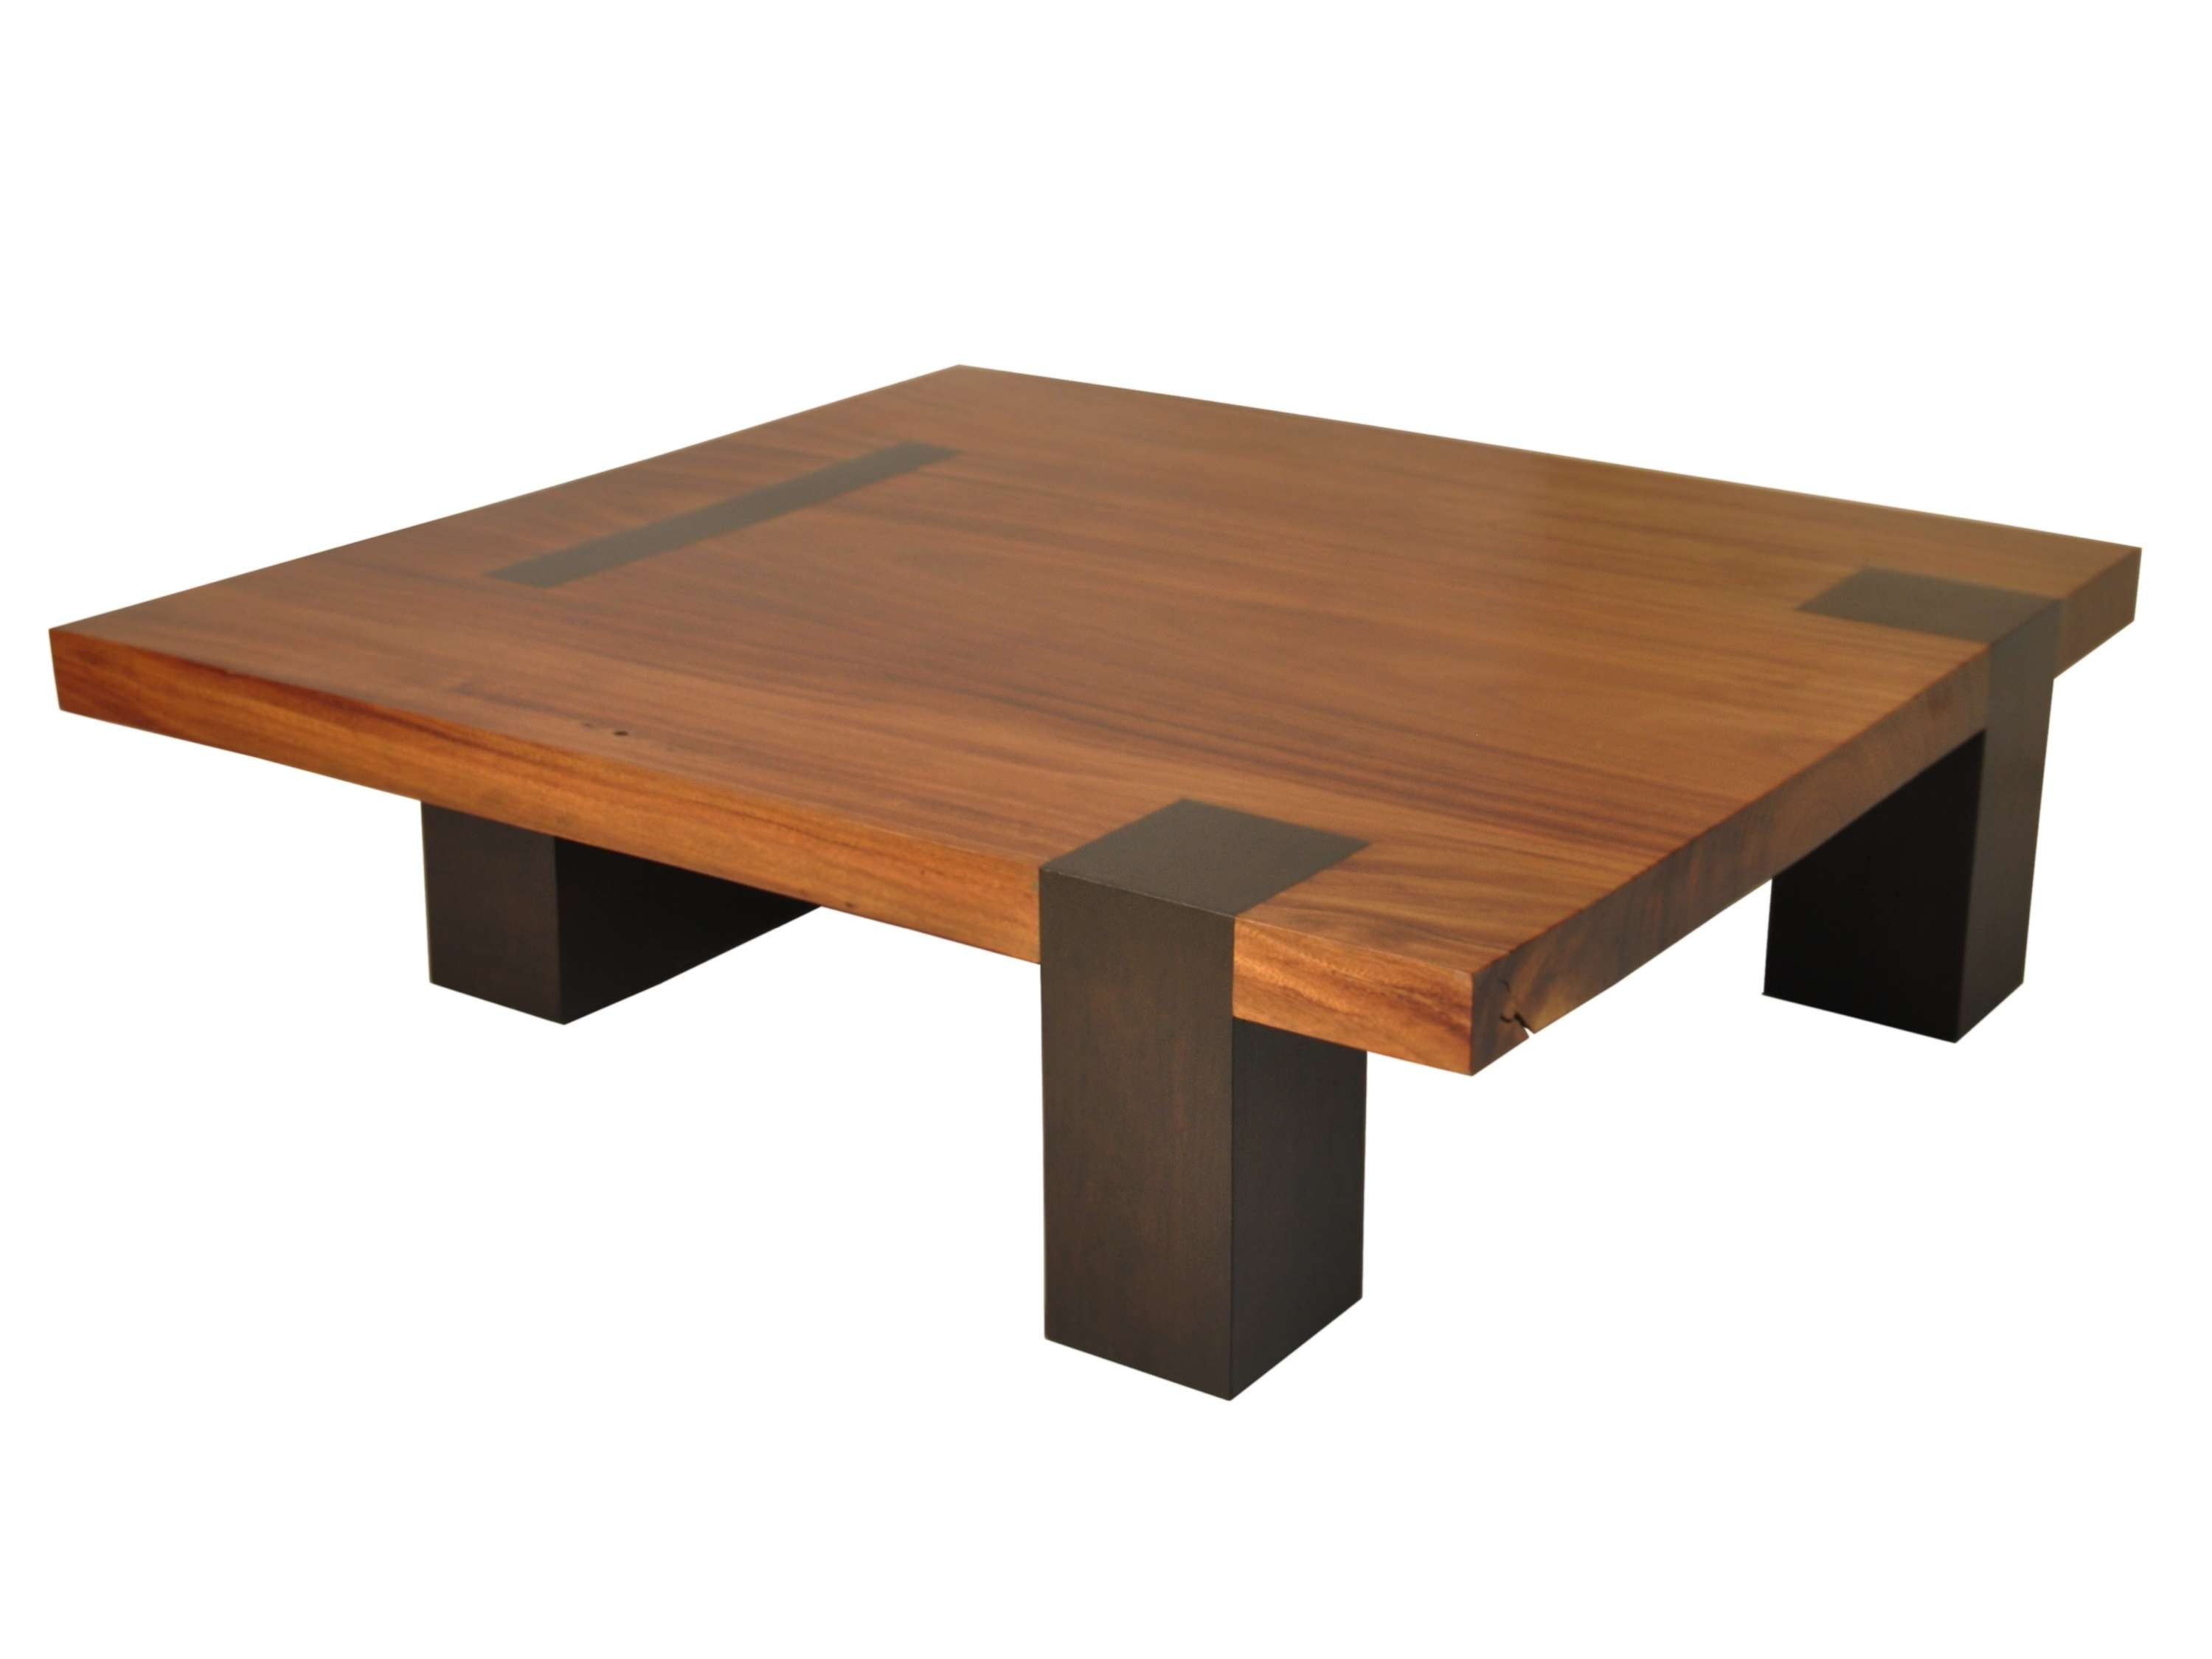 Coffee Tables Ideas: Best Wood Square Coffee Table With Storage With Regard To Preferred Large Square Coffee Tables (View 7 of 20)